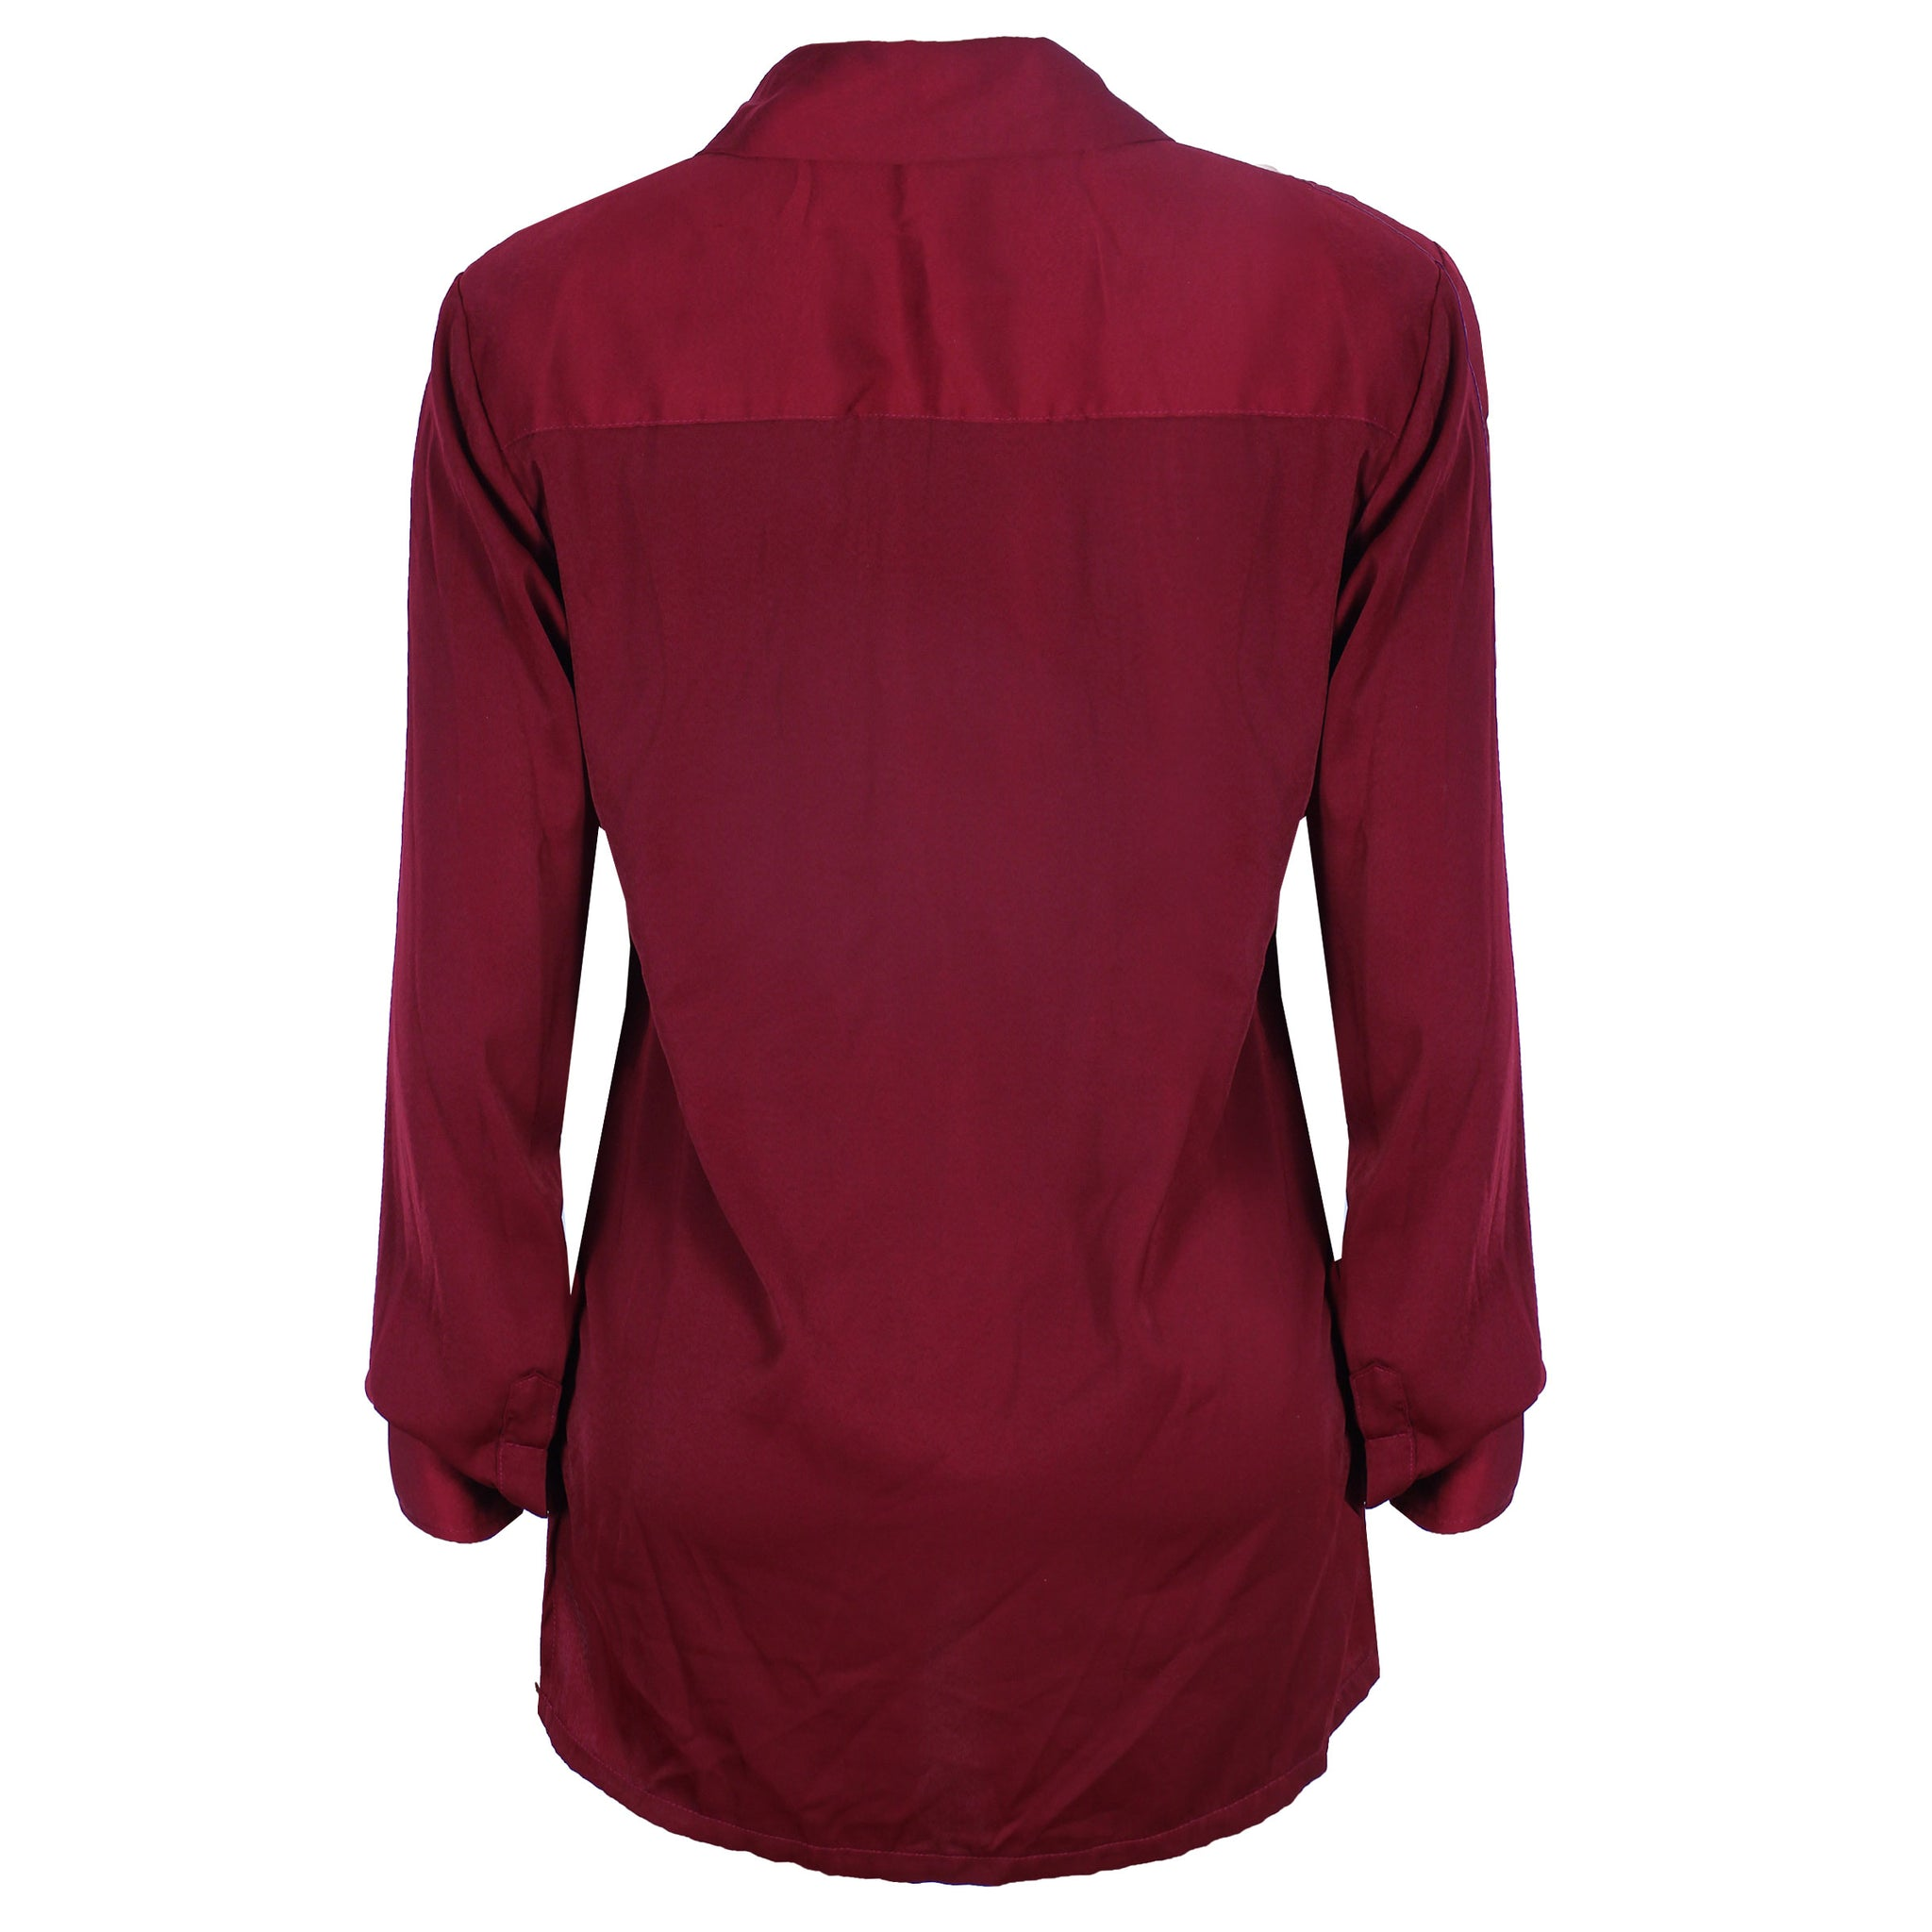 BURGUNDY SILK SATIN SHIRT